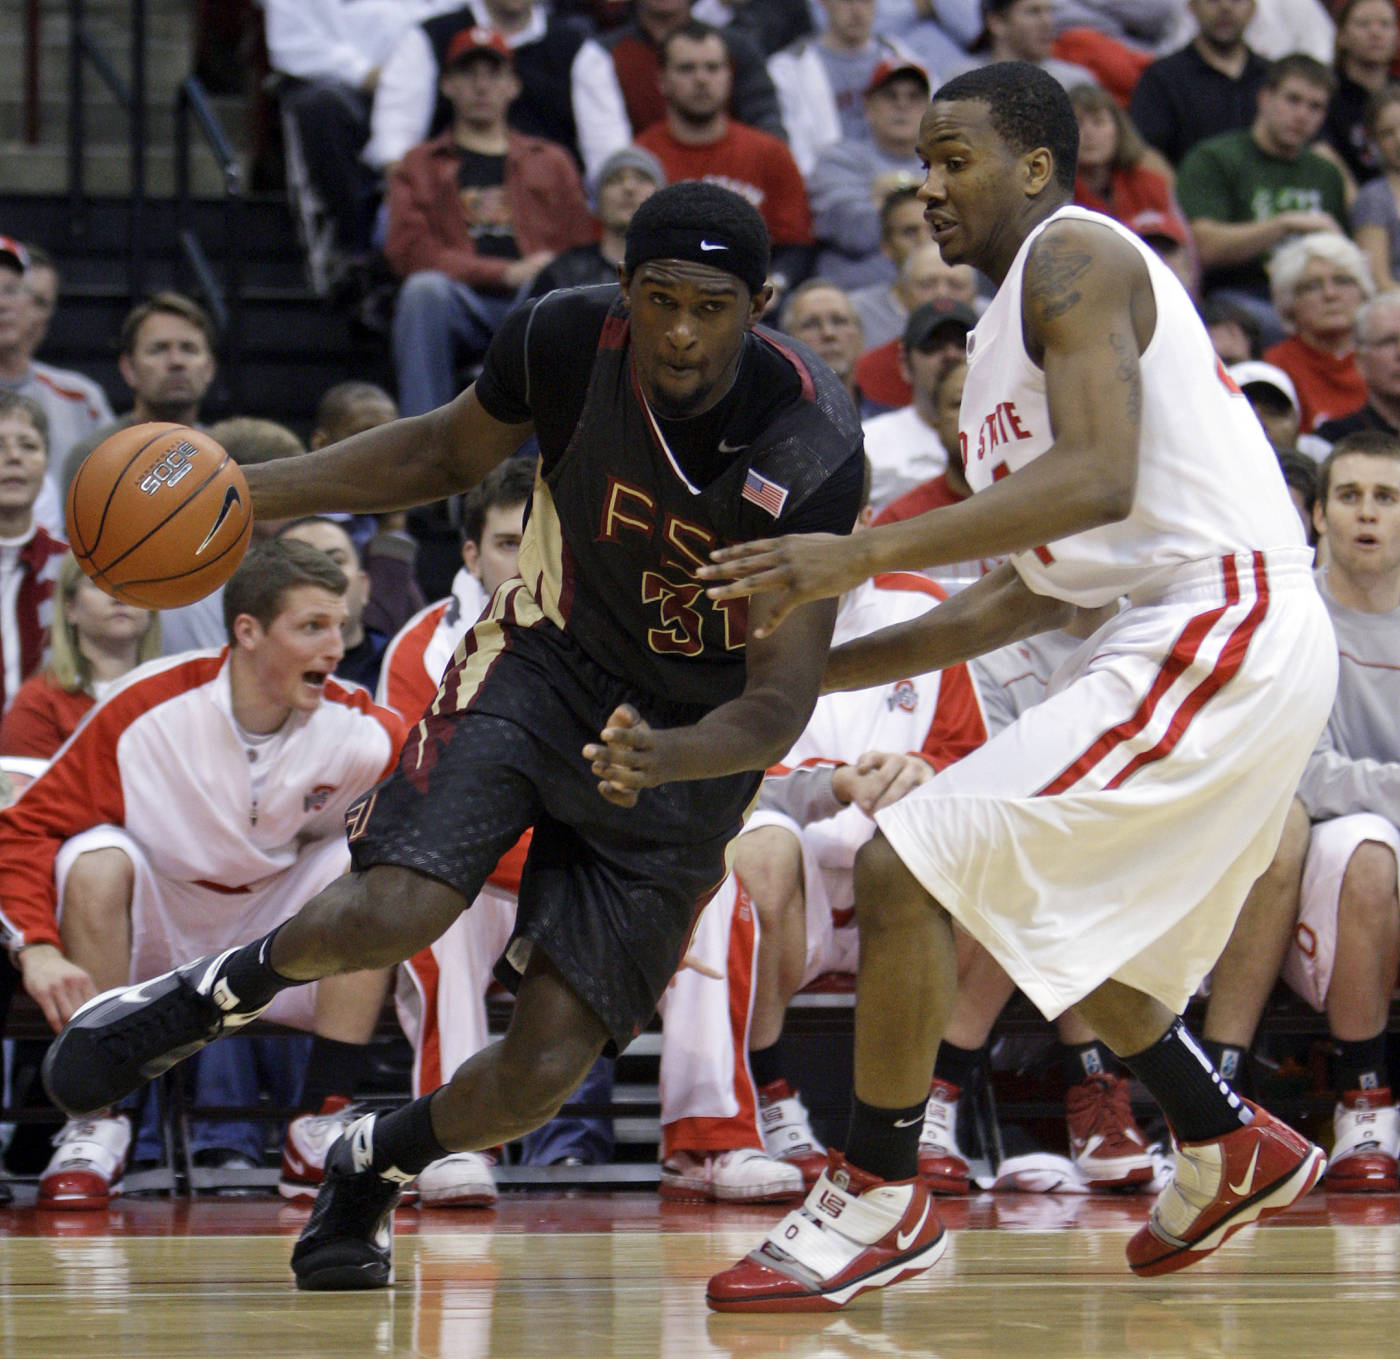 Florida State's Chris Singleton, left, drives to the basket against Ohio State's William Buford during the first half.